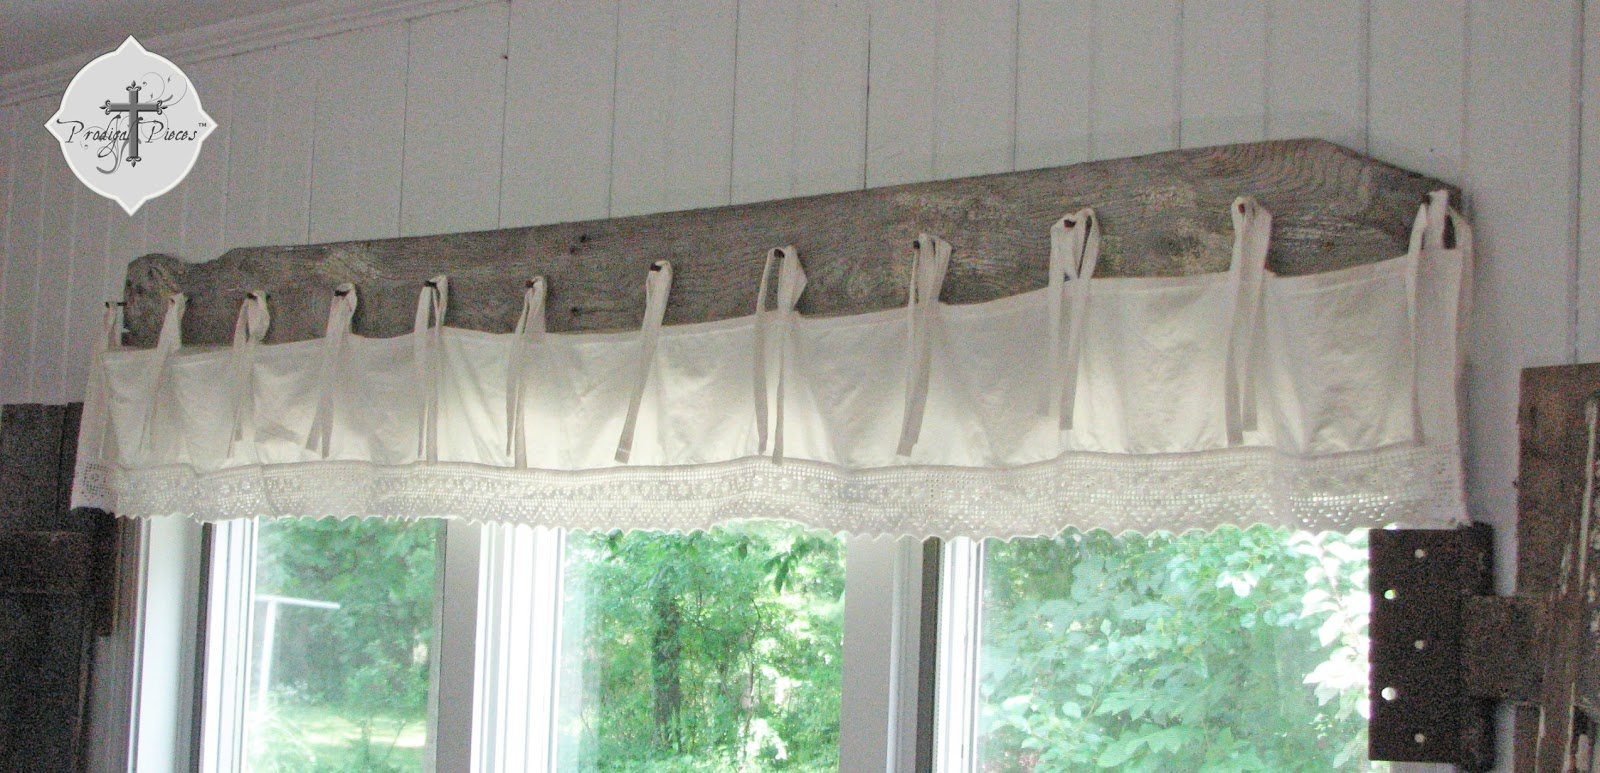 DIY Barn Wood & Bedskirt Valance Prodigal Pieces